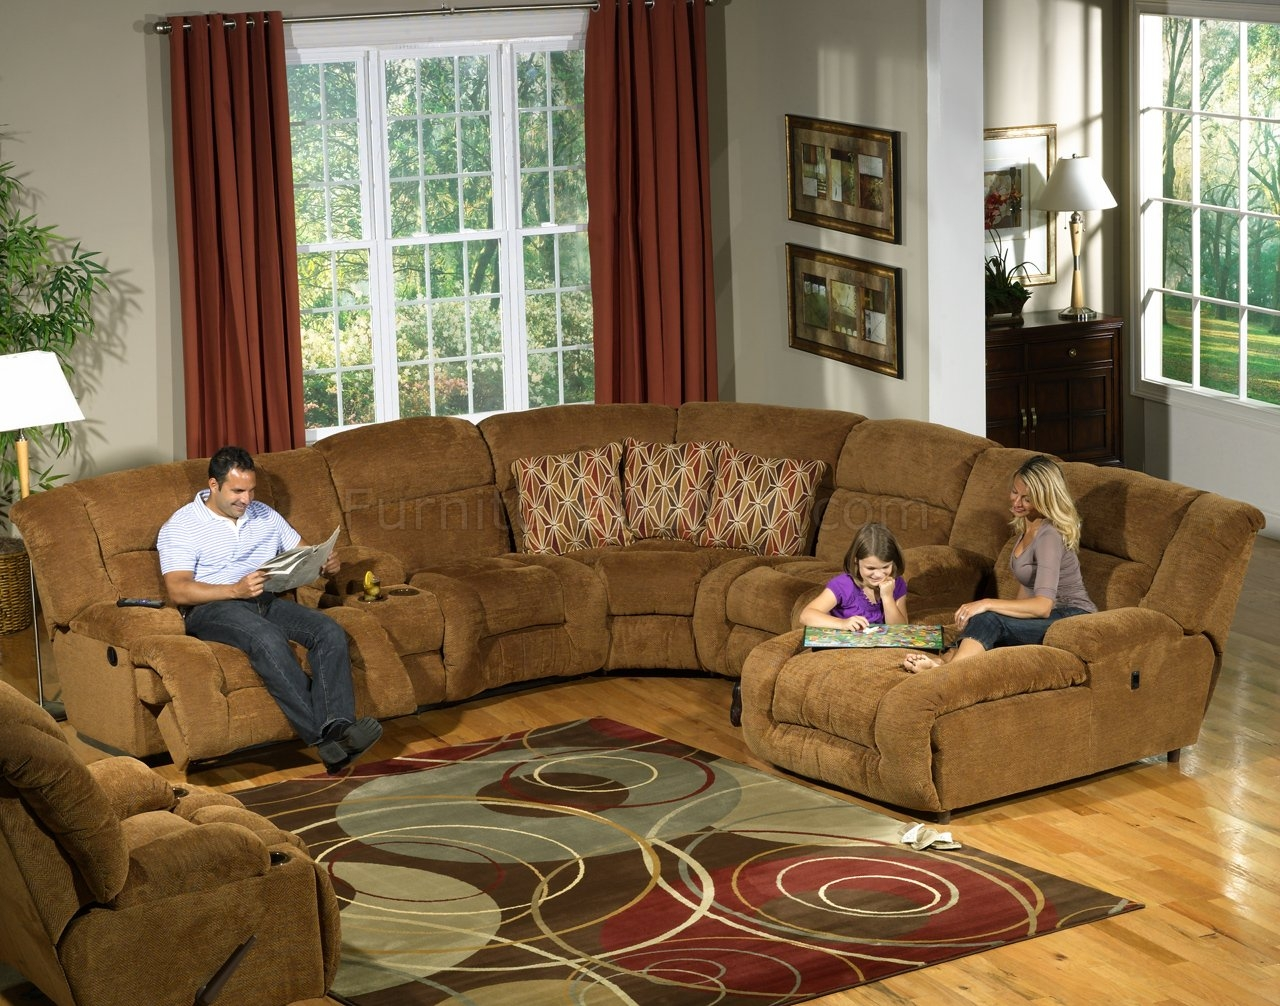 Camel Fabric Enterprise 4pc Reclining Sectional Sofa Woptions With Camel Colored Sectional Sofa (View 10 of 12)